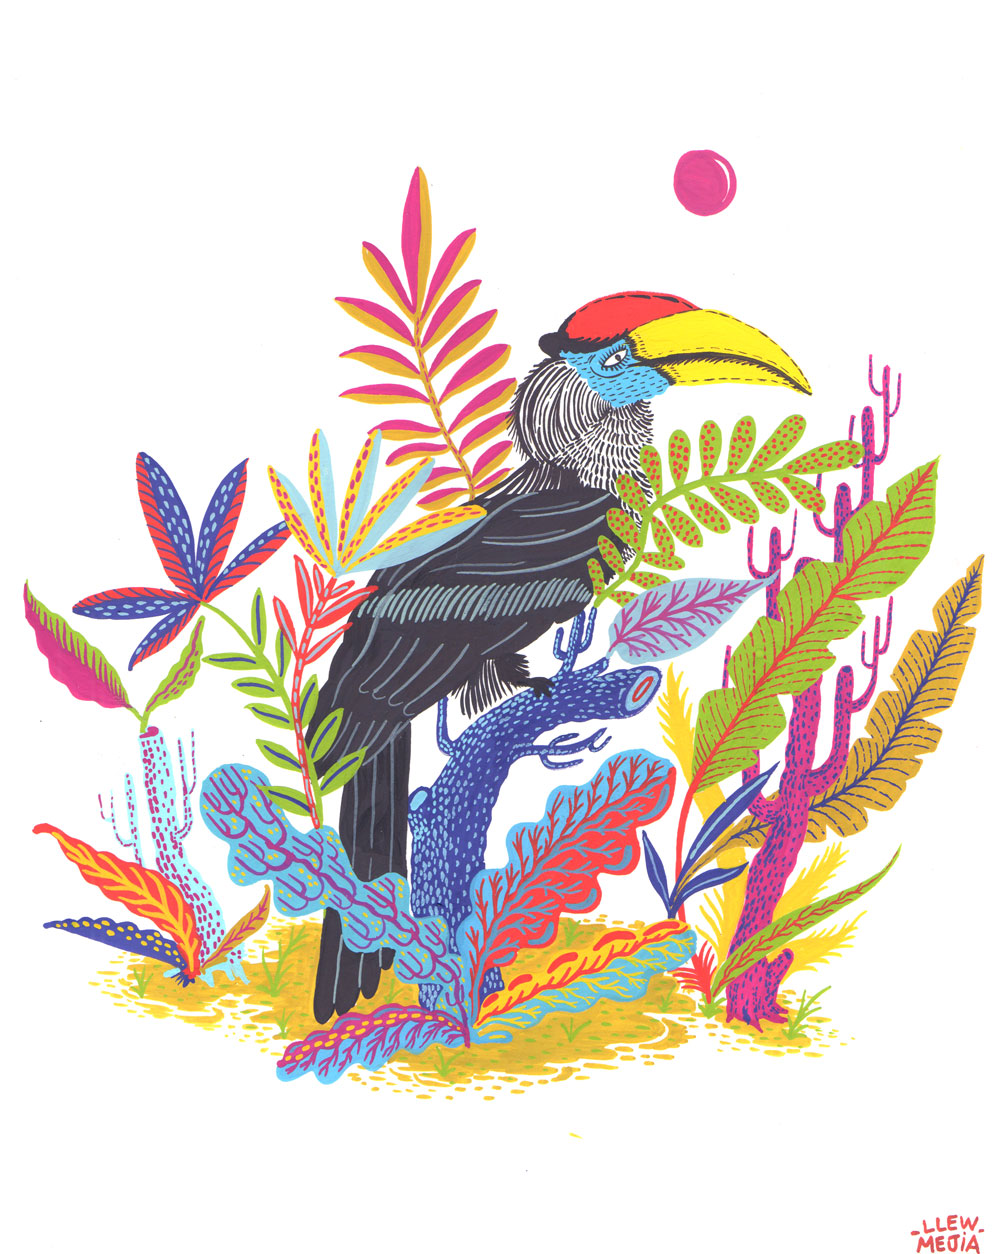 The Great Hornbill reinterpreted through a gouache painting I made. Hope you like it!